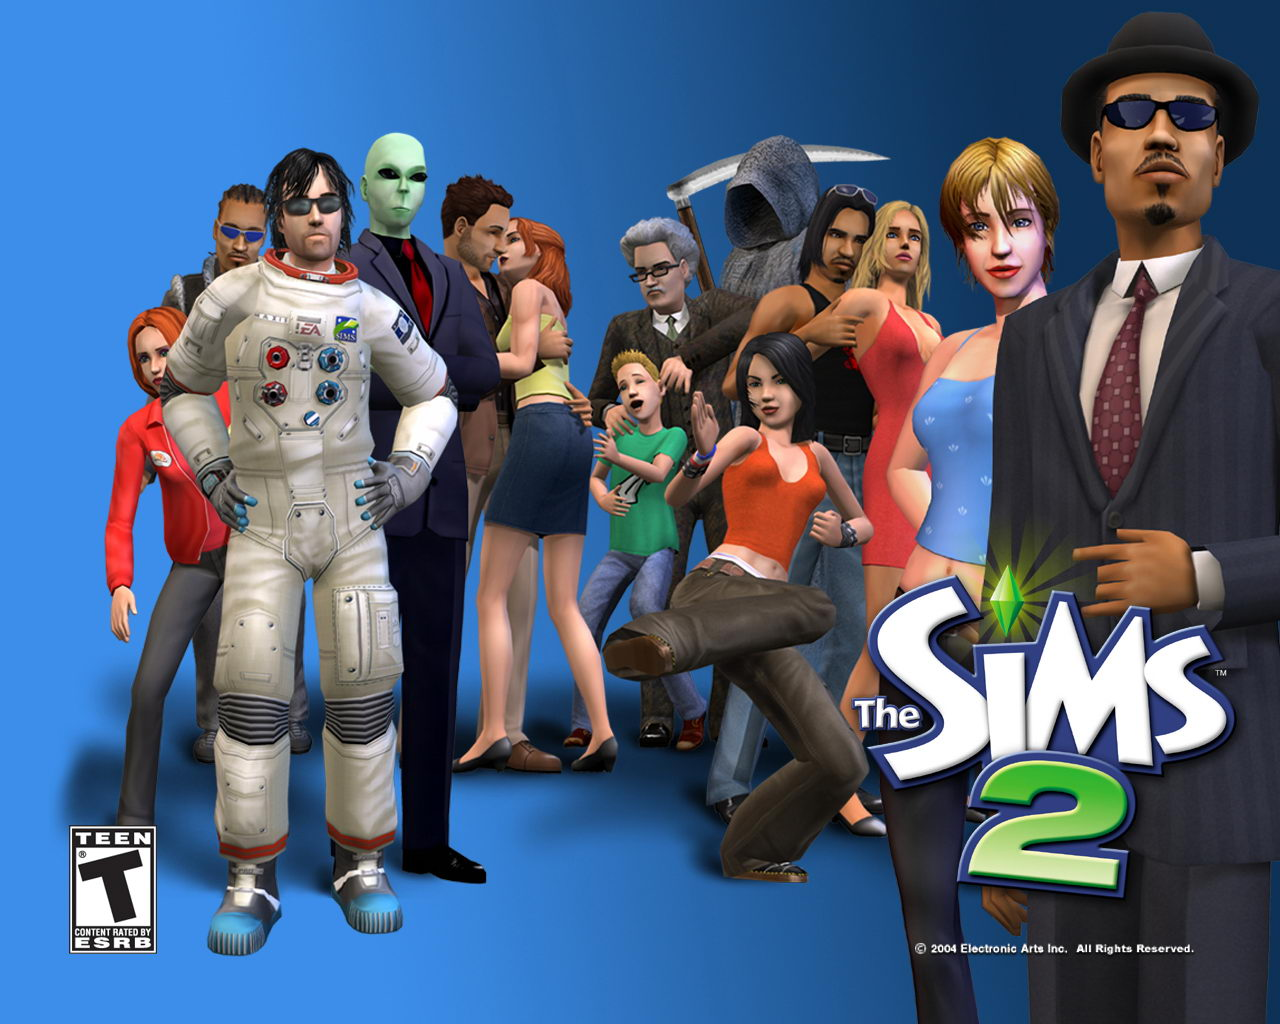 Sims x rated mod erotic galleries